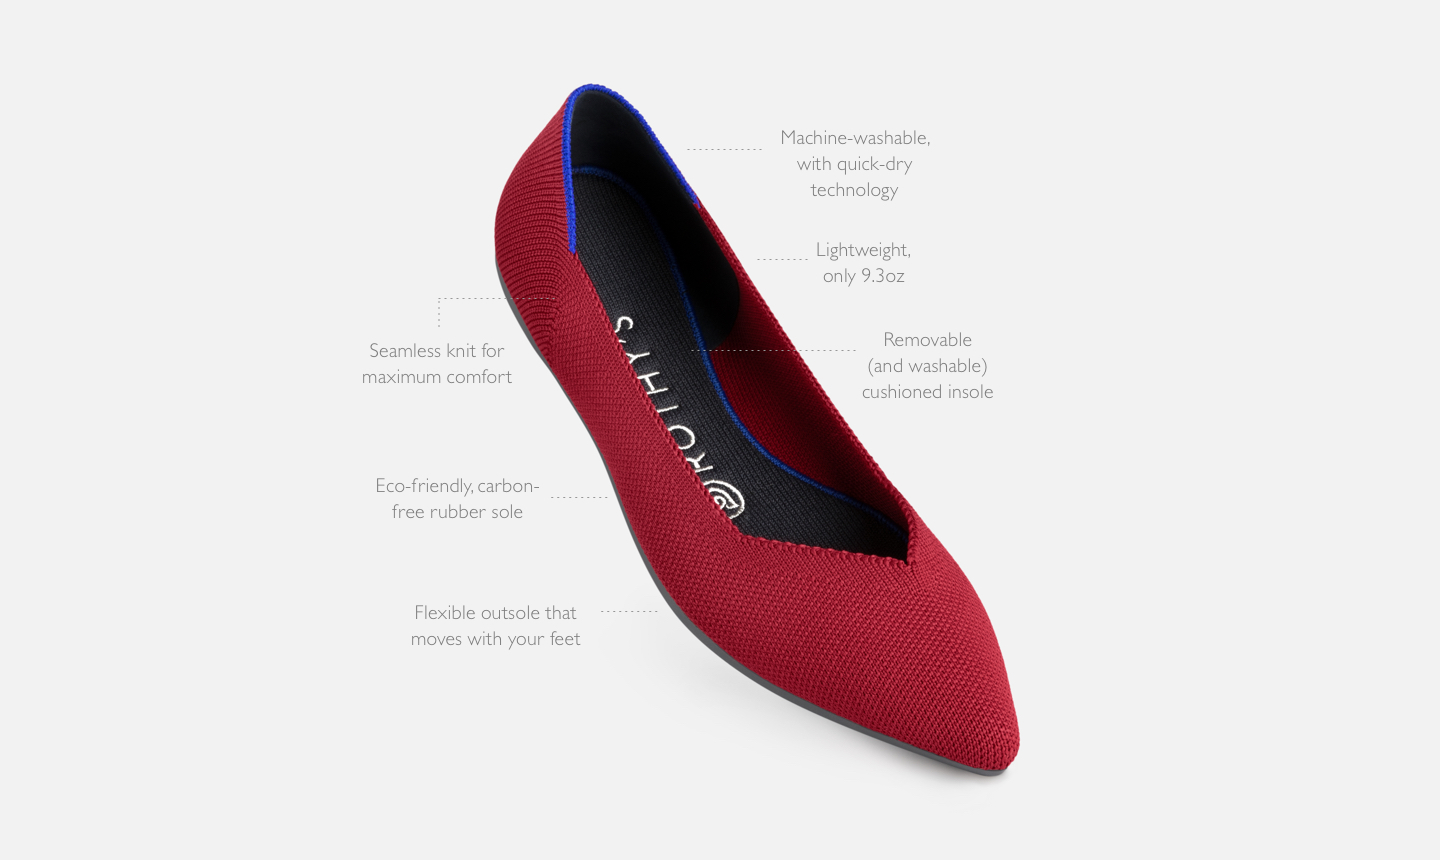 bf5fc076b9e About Rothy's   The 'Go To' Shoes for Versatility Comfort & Style ...